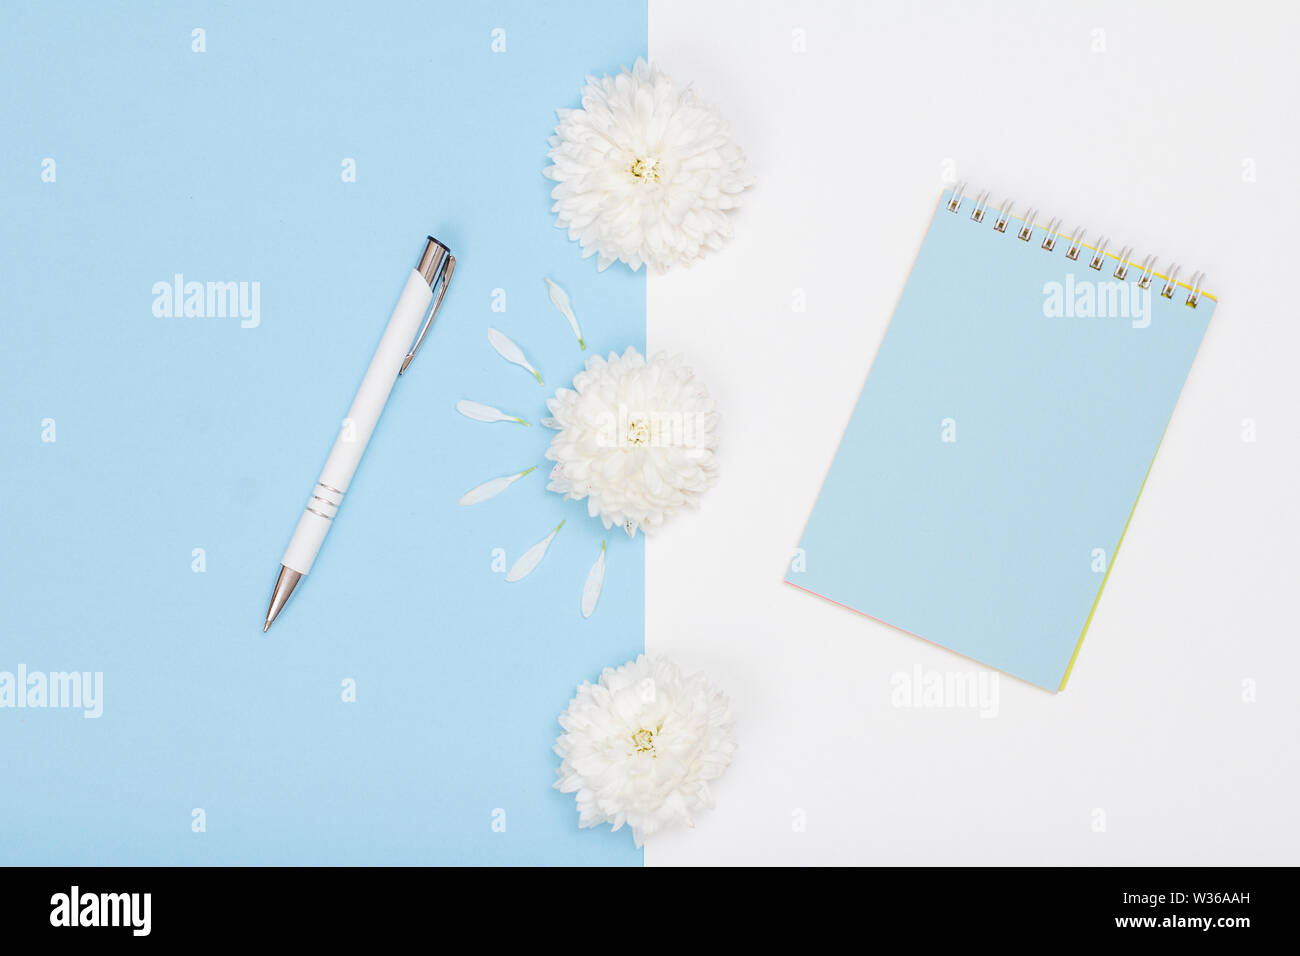 School supplies. Notebook and pen on white and blue background with flowers. Top view. Back to school concept. - Stock Image